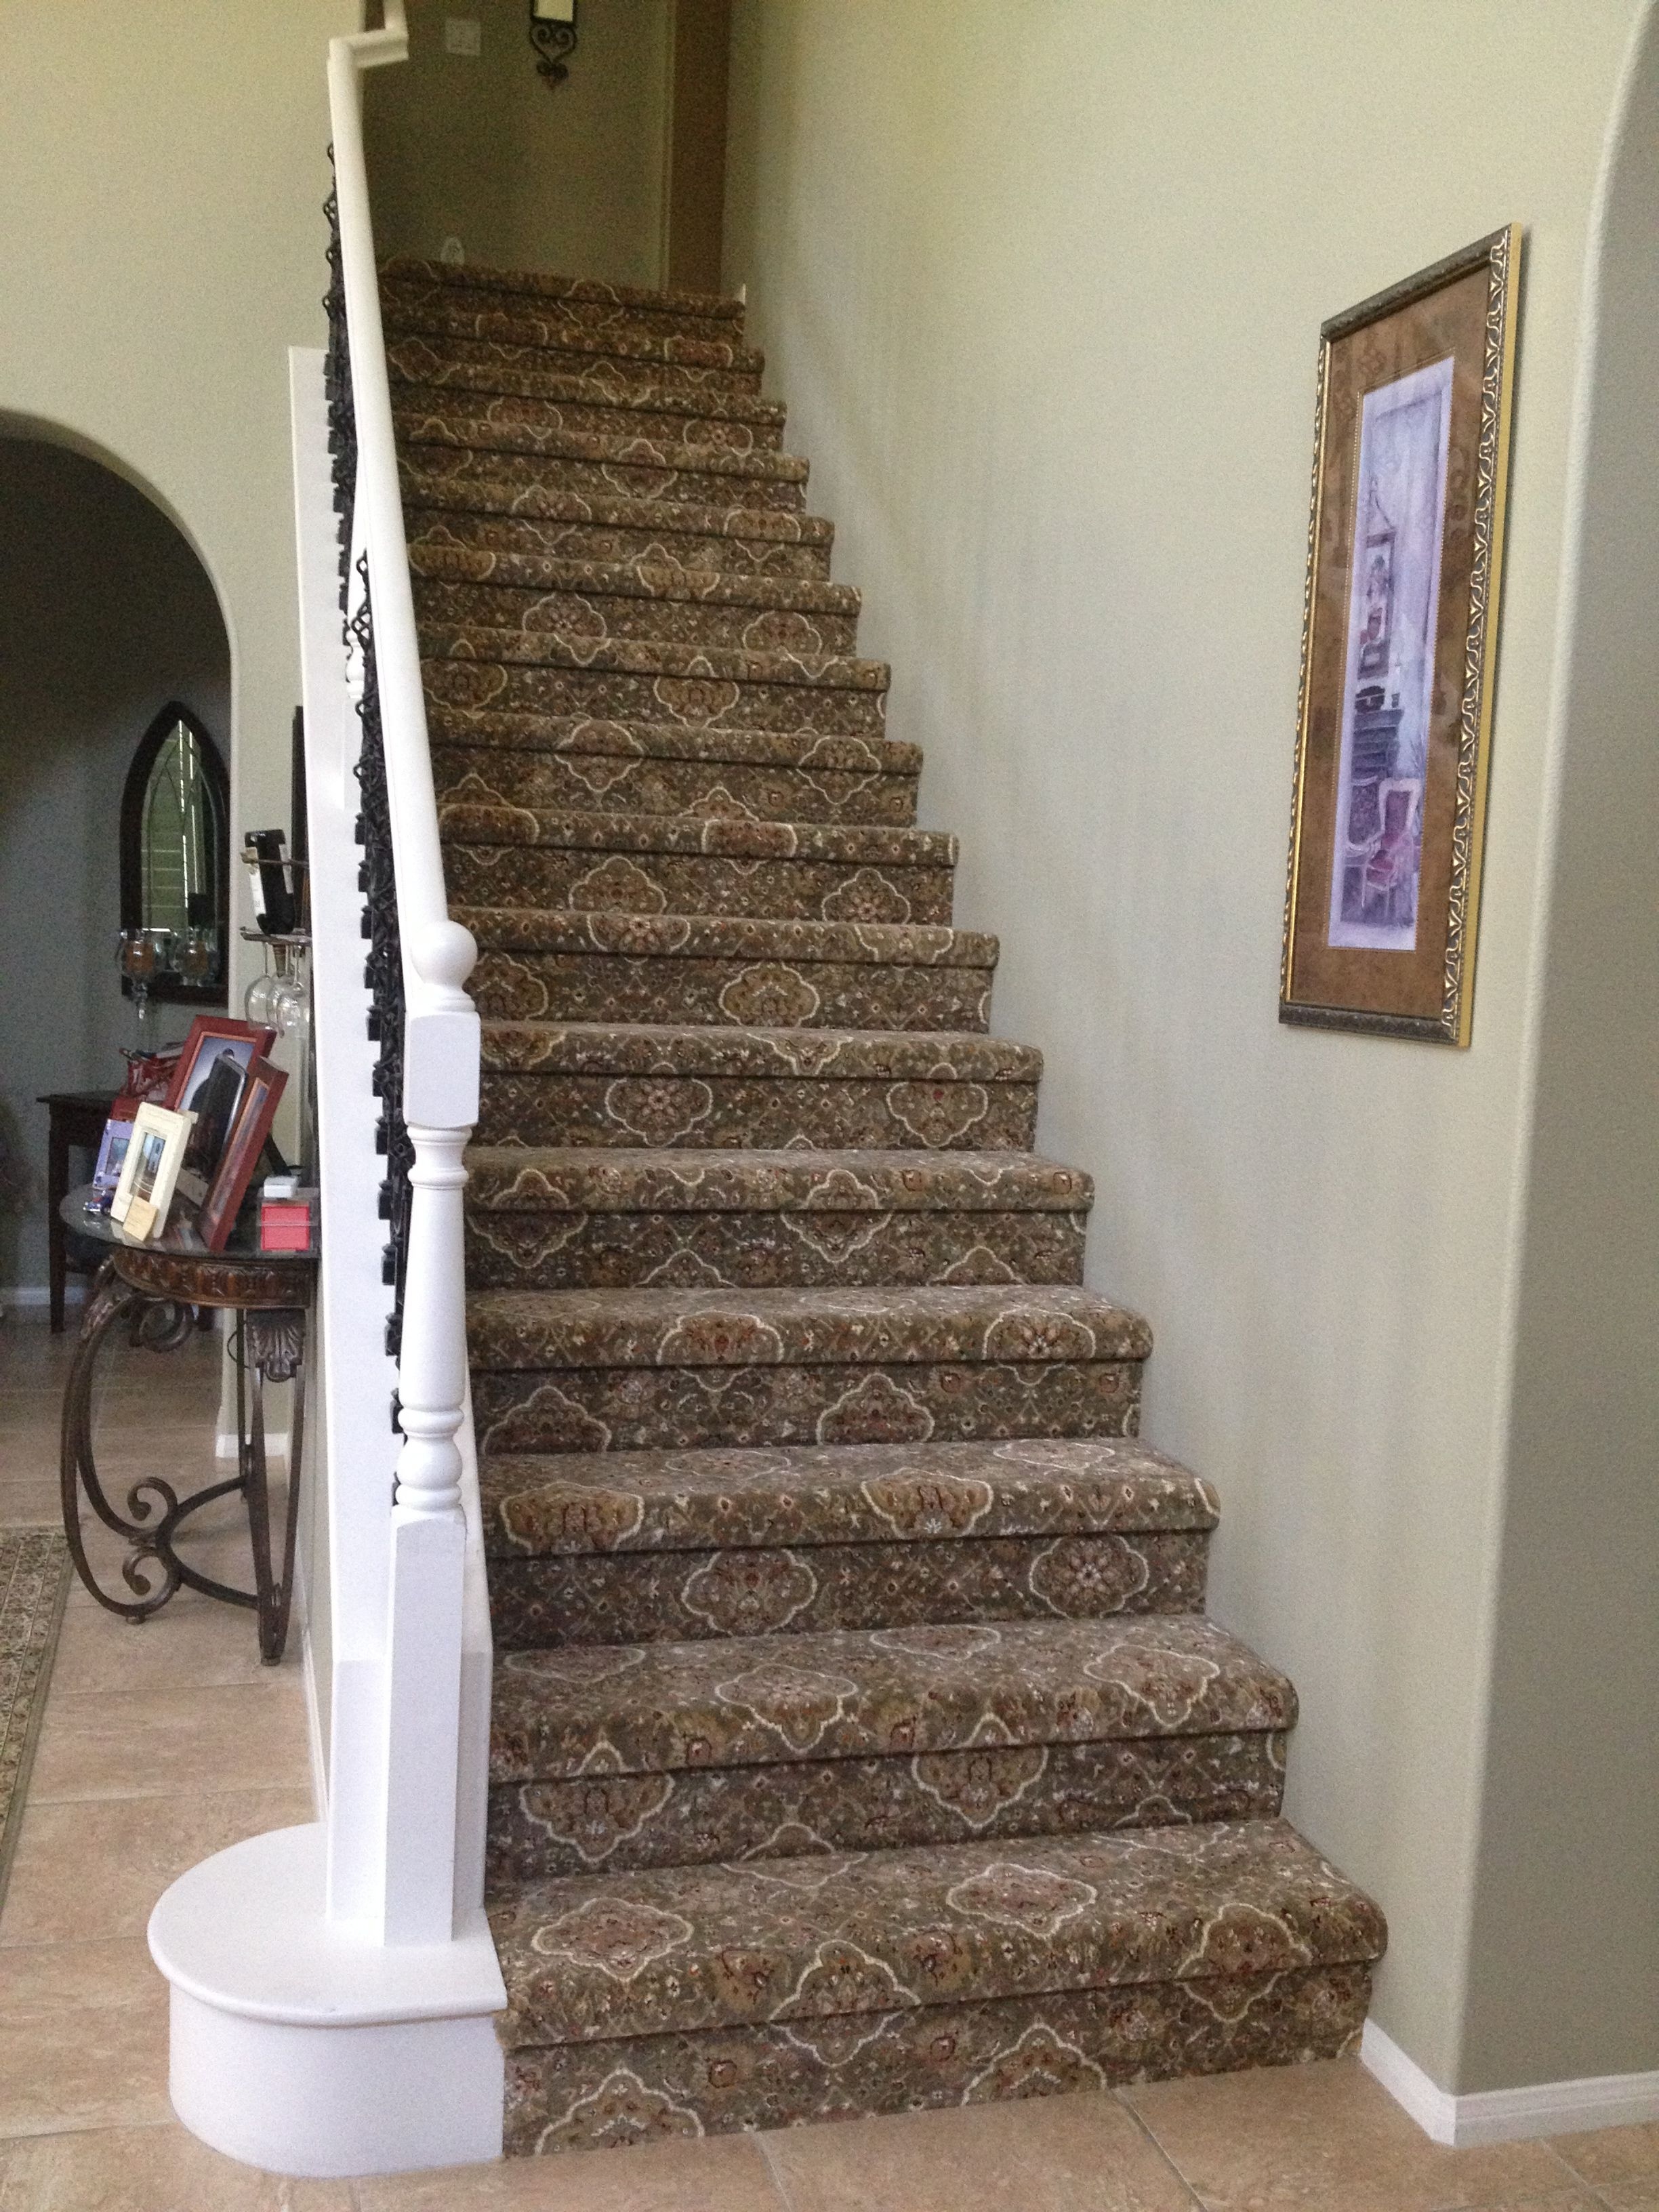 New Carpet On Stairs Aug 6 2013 Stairway Carpet Patterned   Cost To Have Stairs Carpeted   Stair Case   Hardwood   Stair Tread   Installation   Carpet Runner